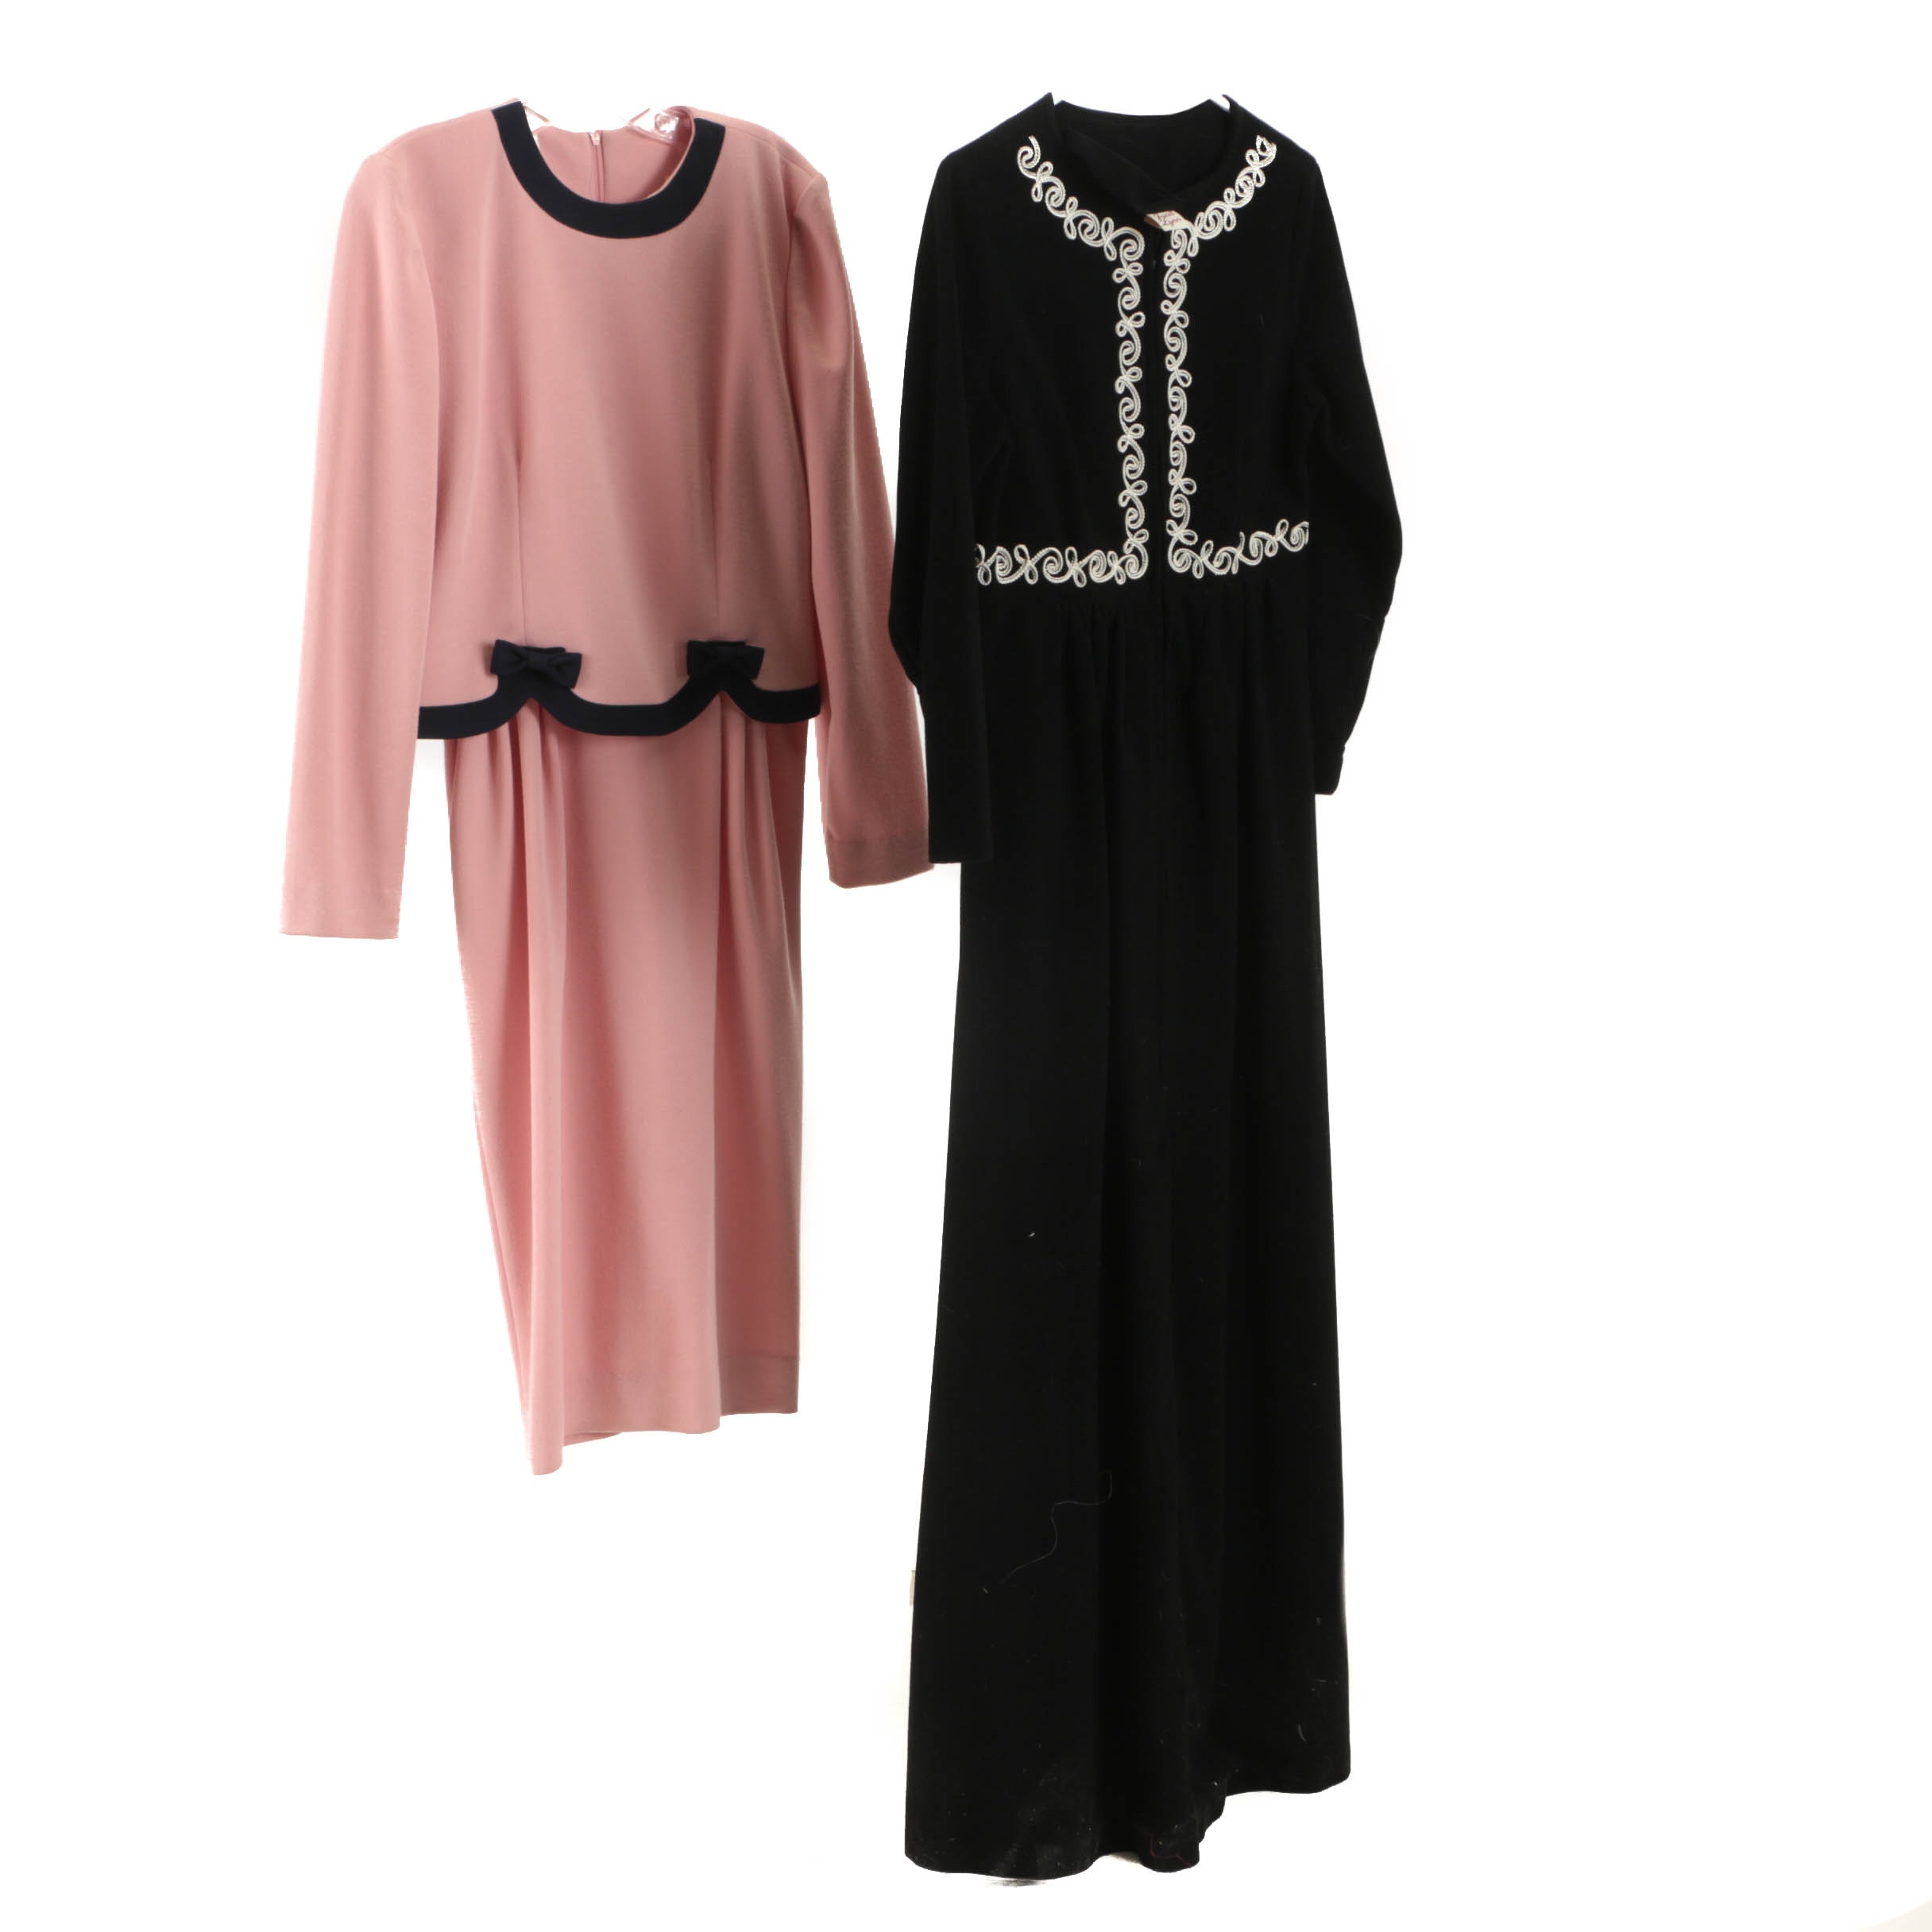 Women's Vintage Dresses Including Leslie Faye